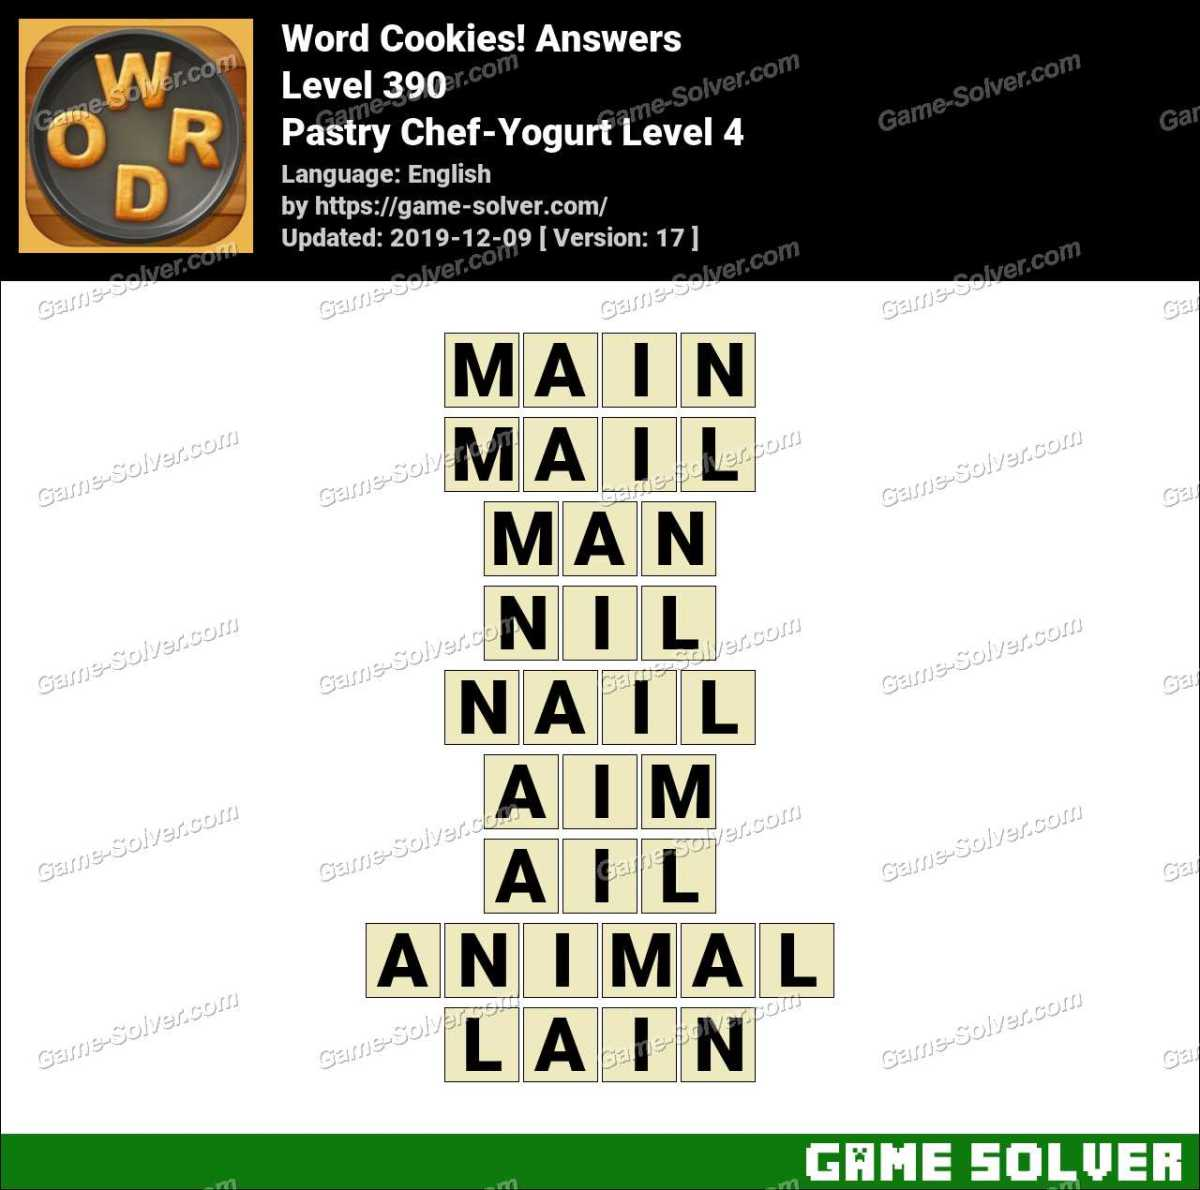 Word Cookies Pastry Chef-Yogurt Level 4 Answers